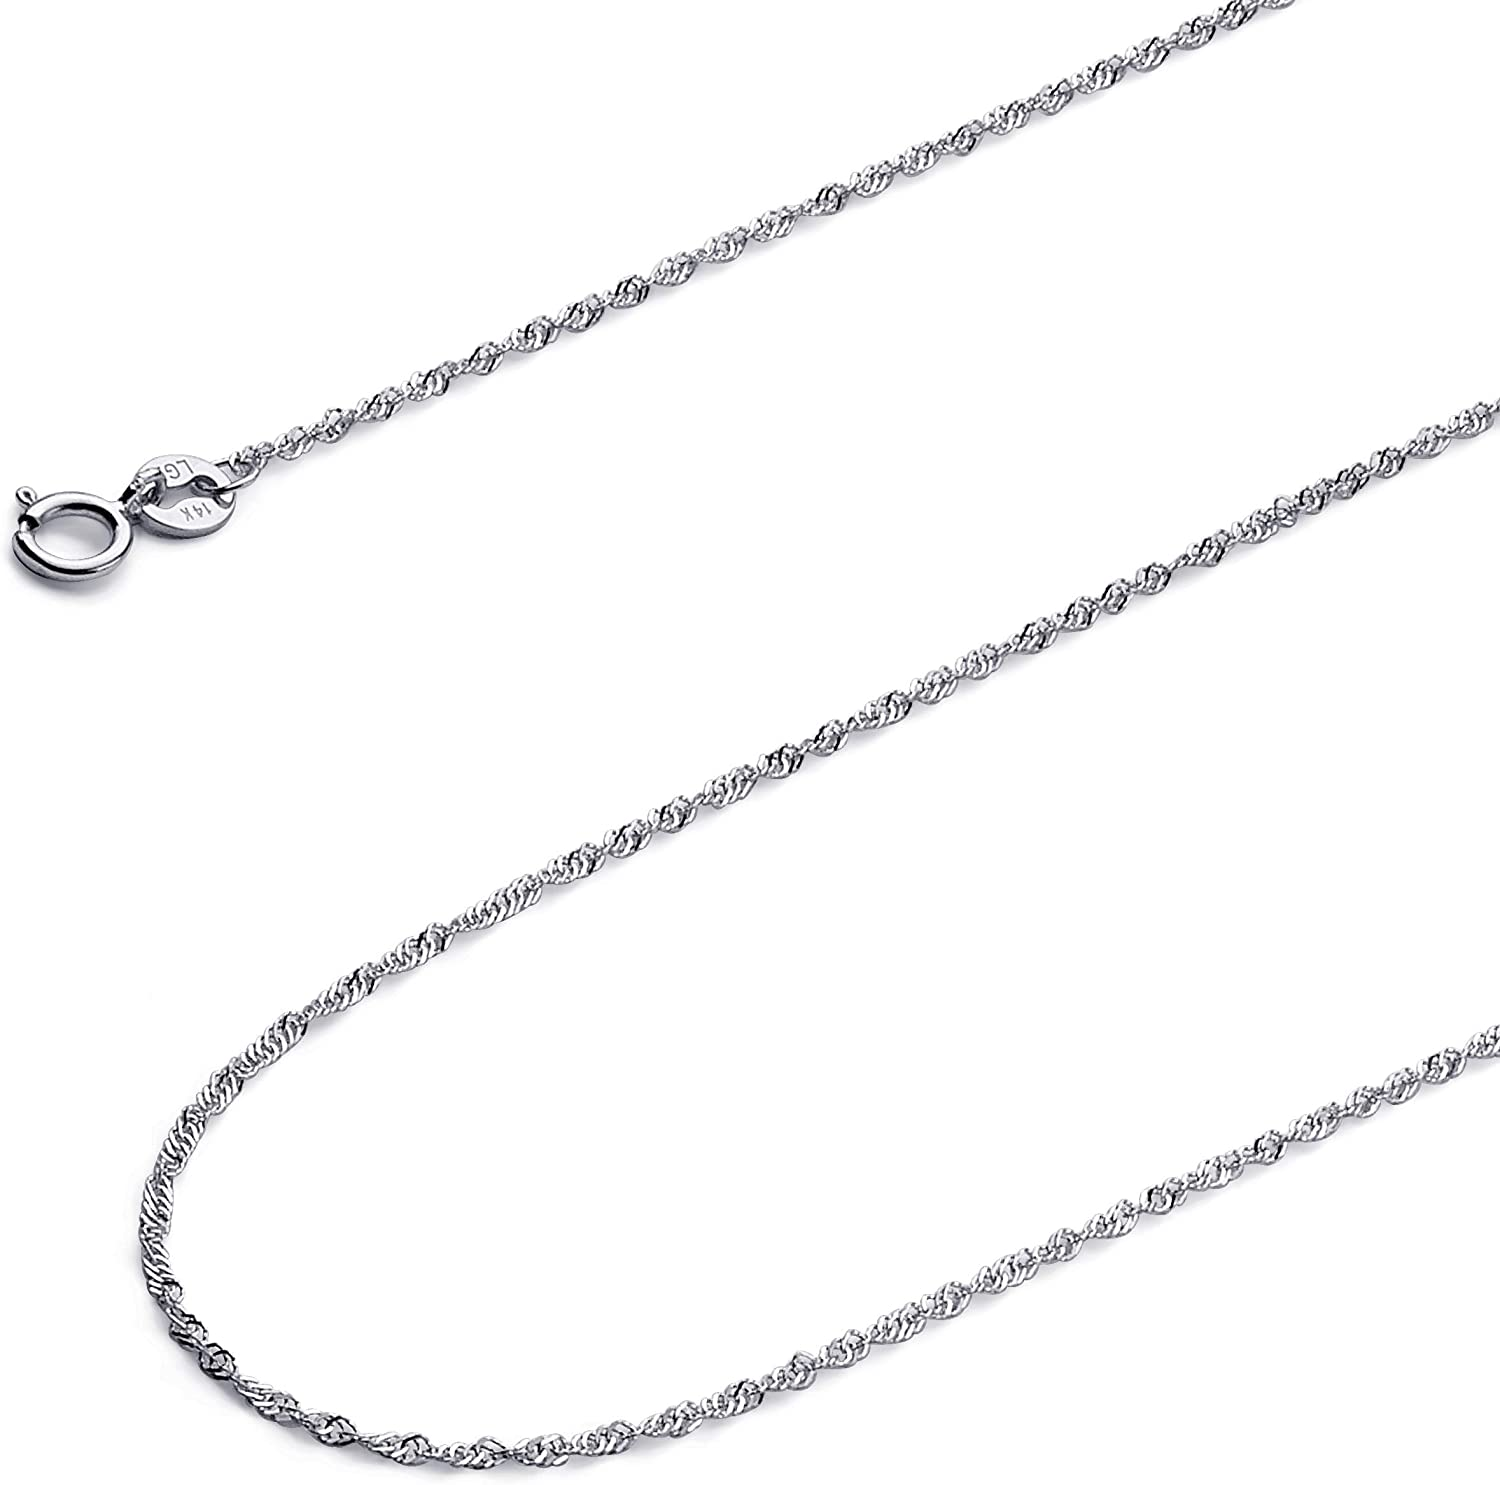 14k REAL Yellow OR White Gold Solid 1mm Singapore Chain Necklace with Spring Ring Clasp